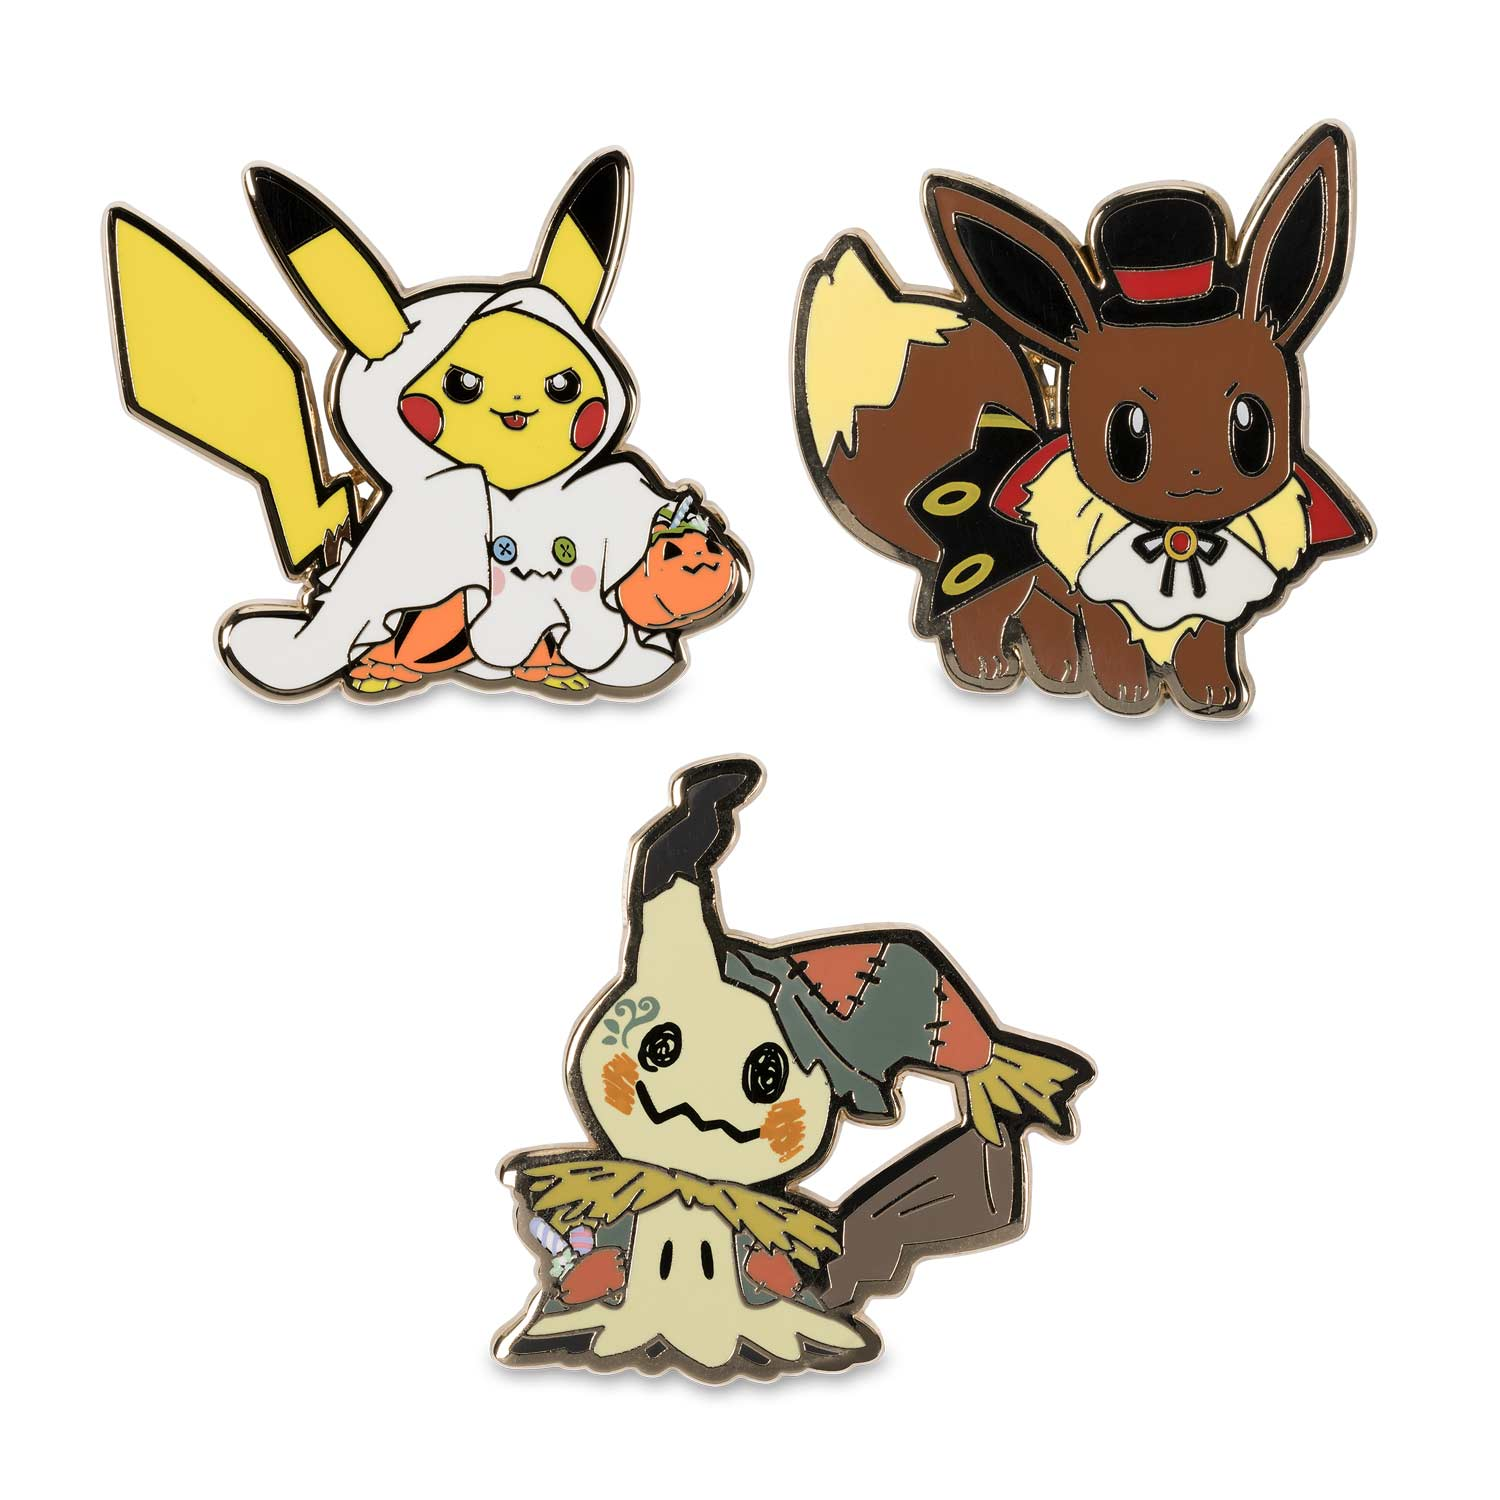 image for halloween pikachu eevee and mimikyu pokmon pins 3 pack